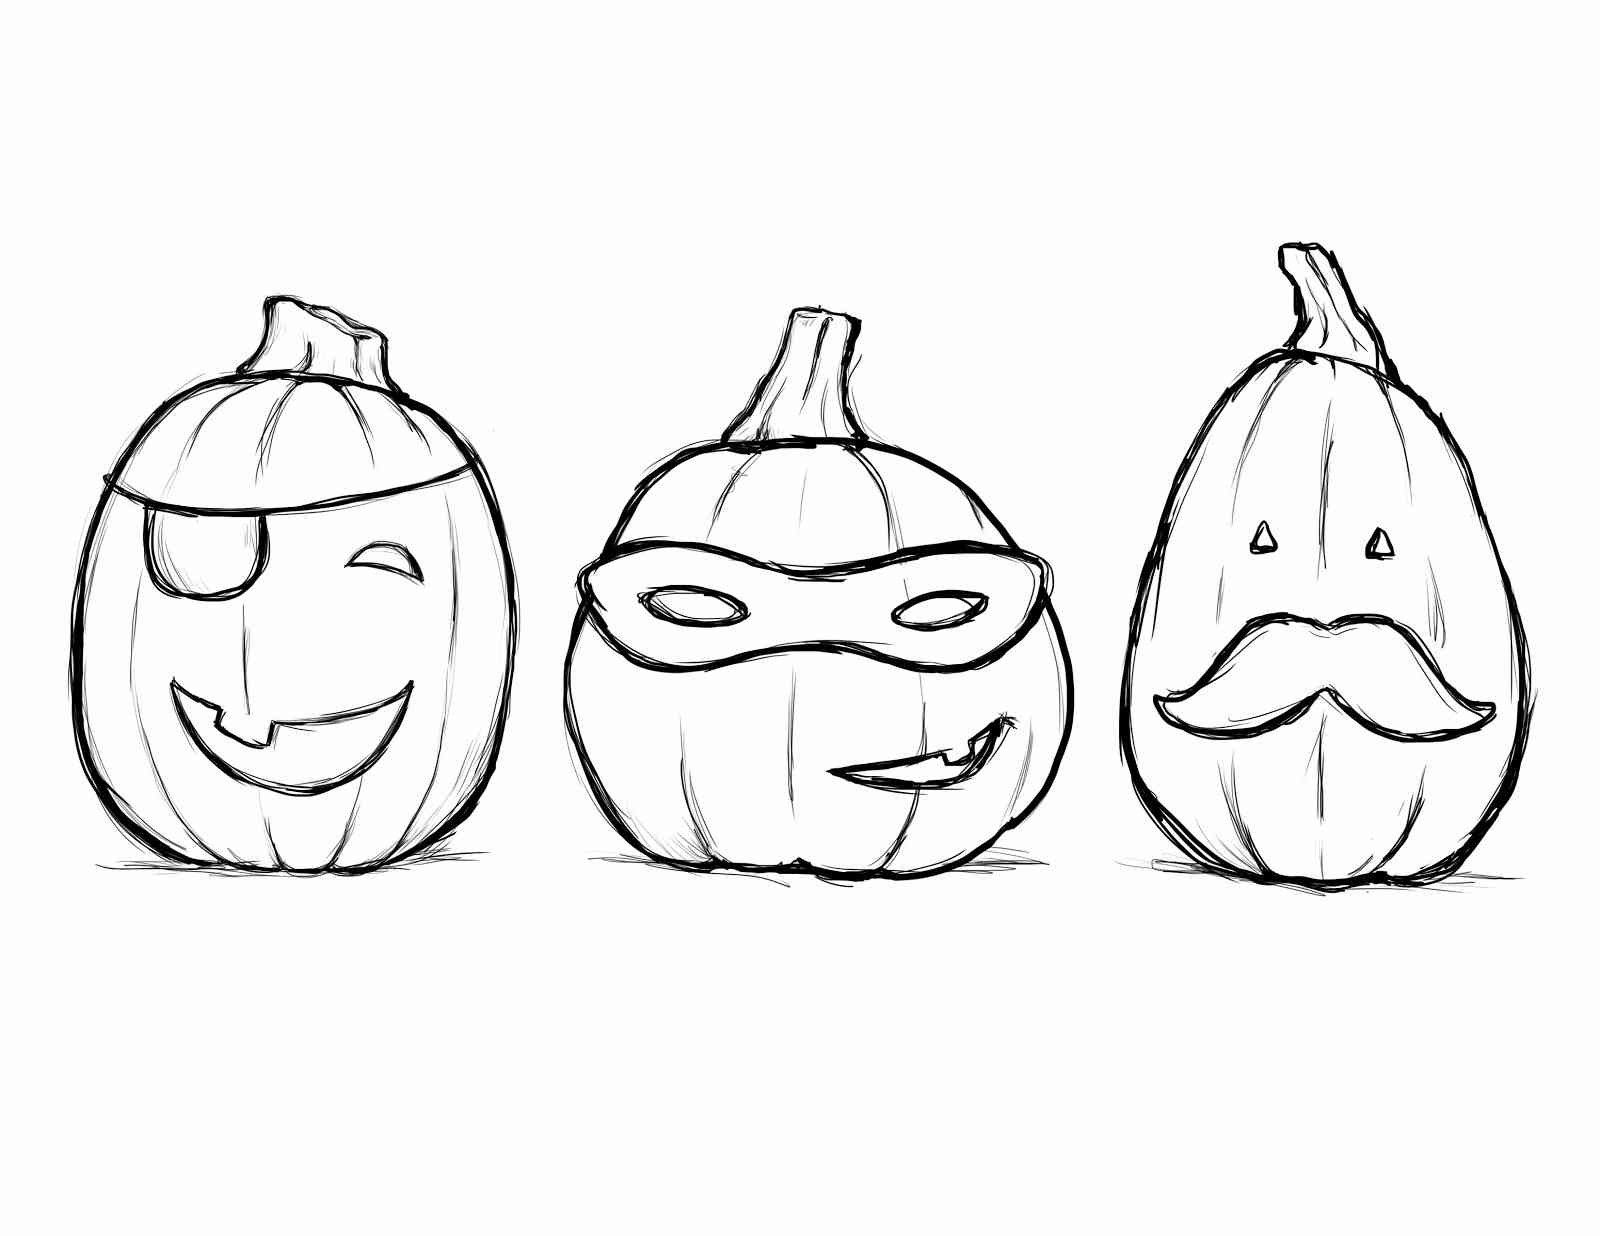 Printable images of the Halloween